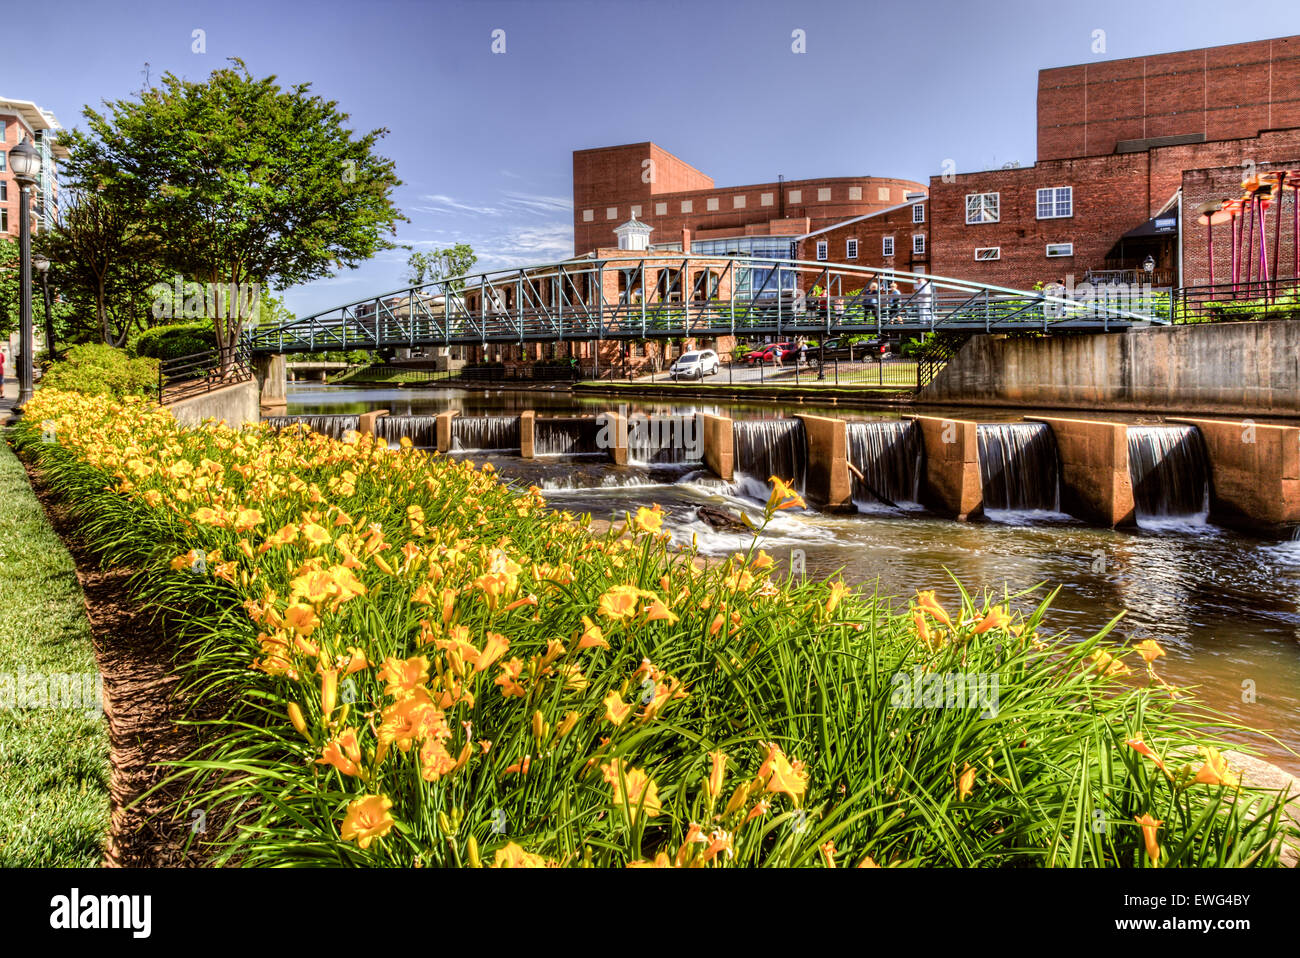 Tourists cross a bridge across the Reedy river in exciting and lively downtown Greenville, SC. - Stock Image